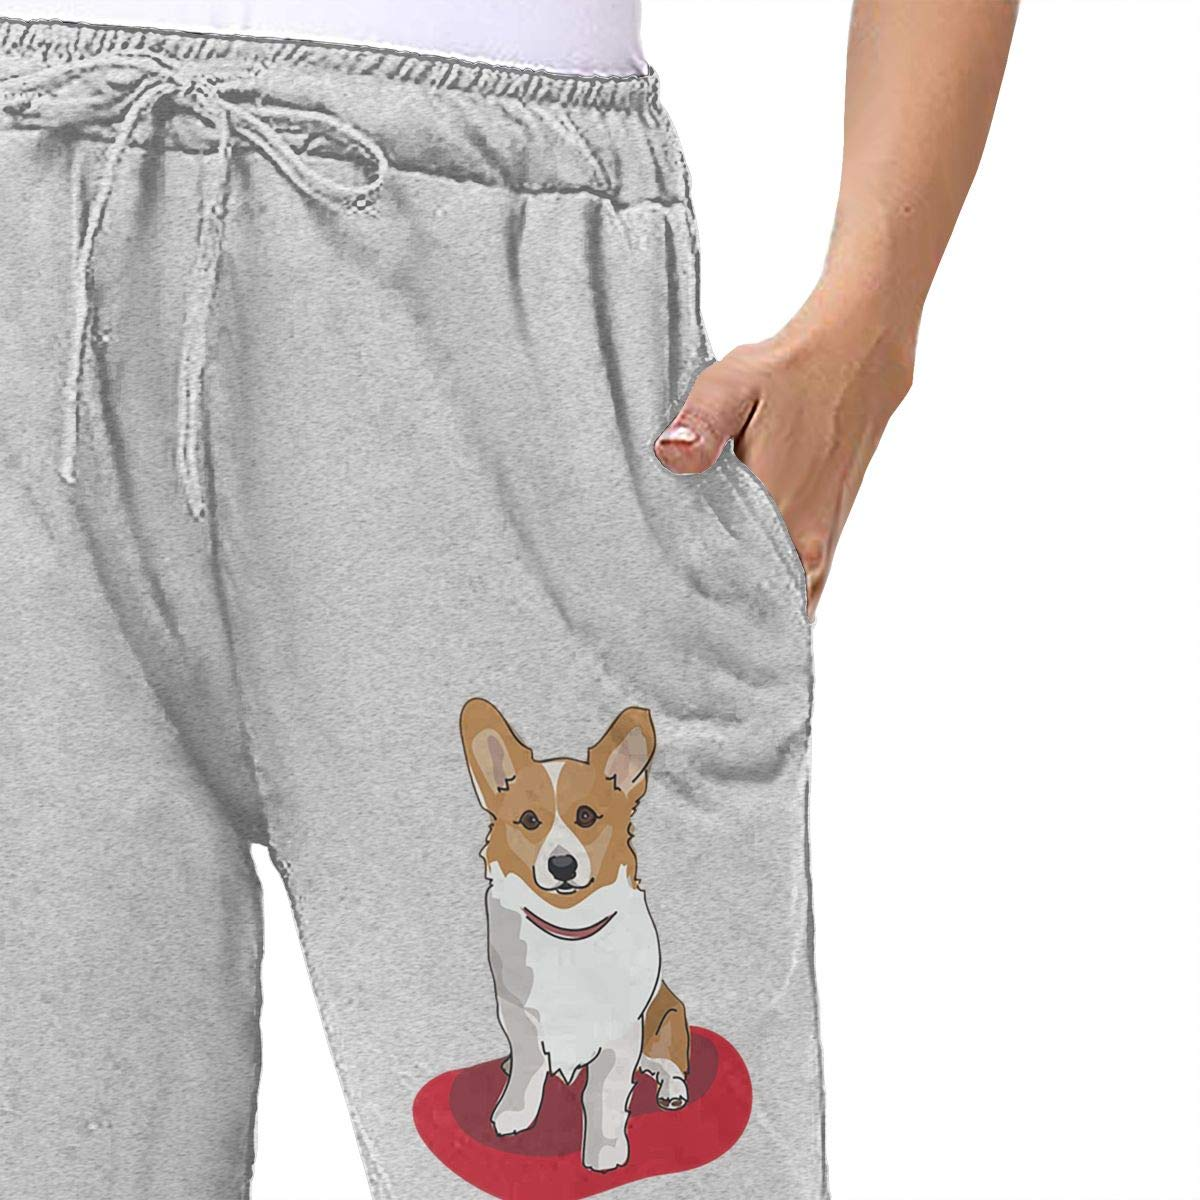 Amazon.com  Lesi Yes Women s Jogger Sweatpants Corgi Dog Active Yoga Lounge  Relaxed Fit Soft Pants with Pockets Workout Training Running  Sports    Outdoors 8b5a4375b